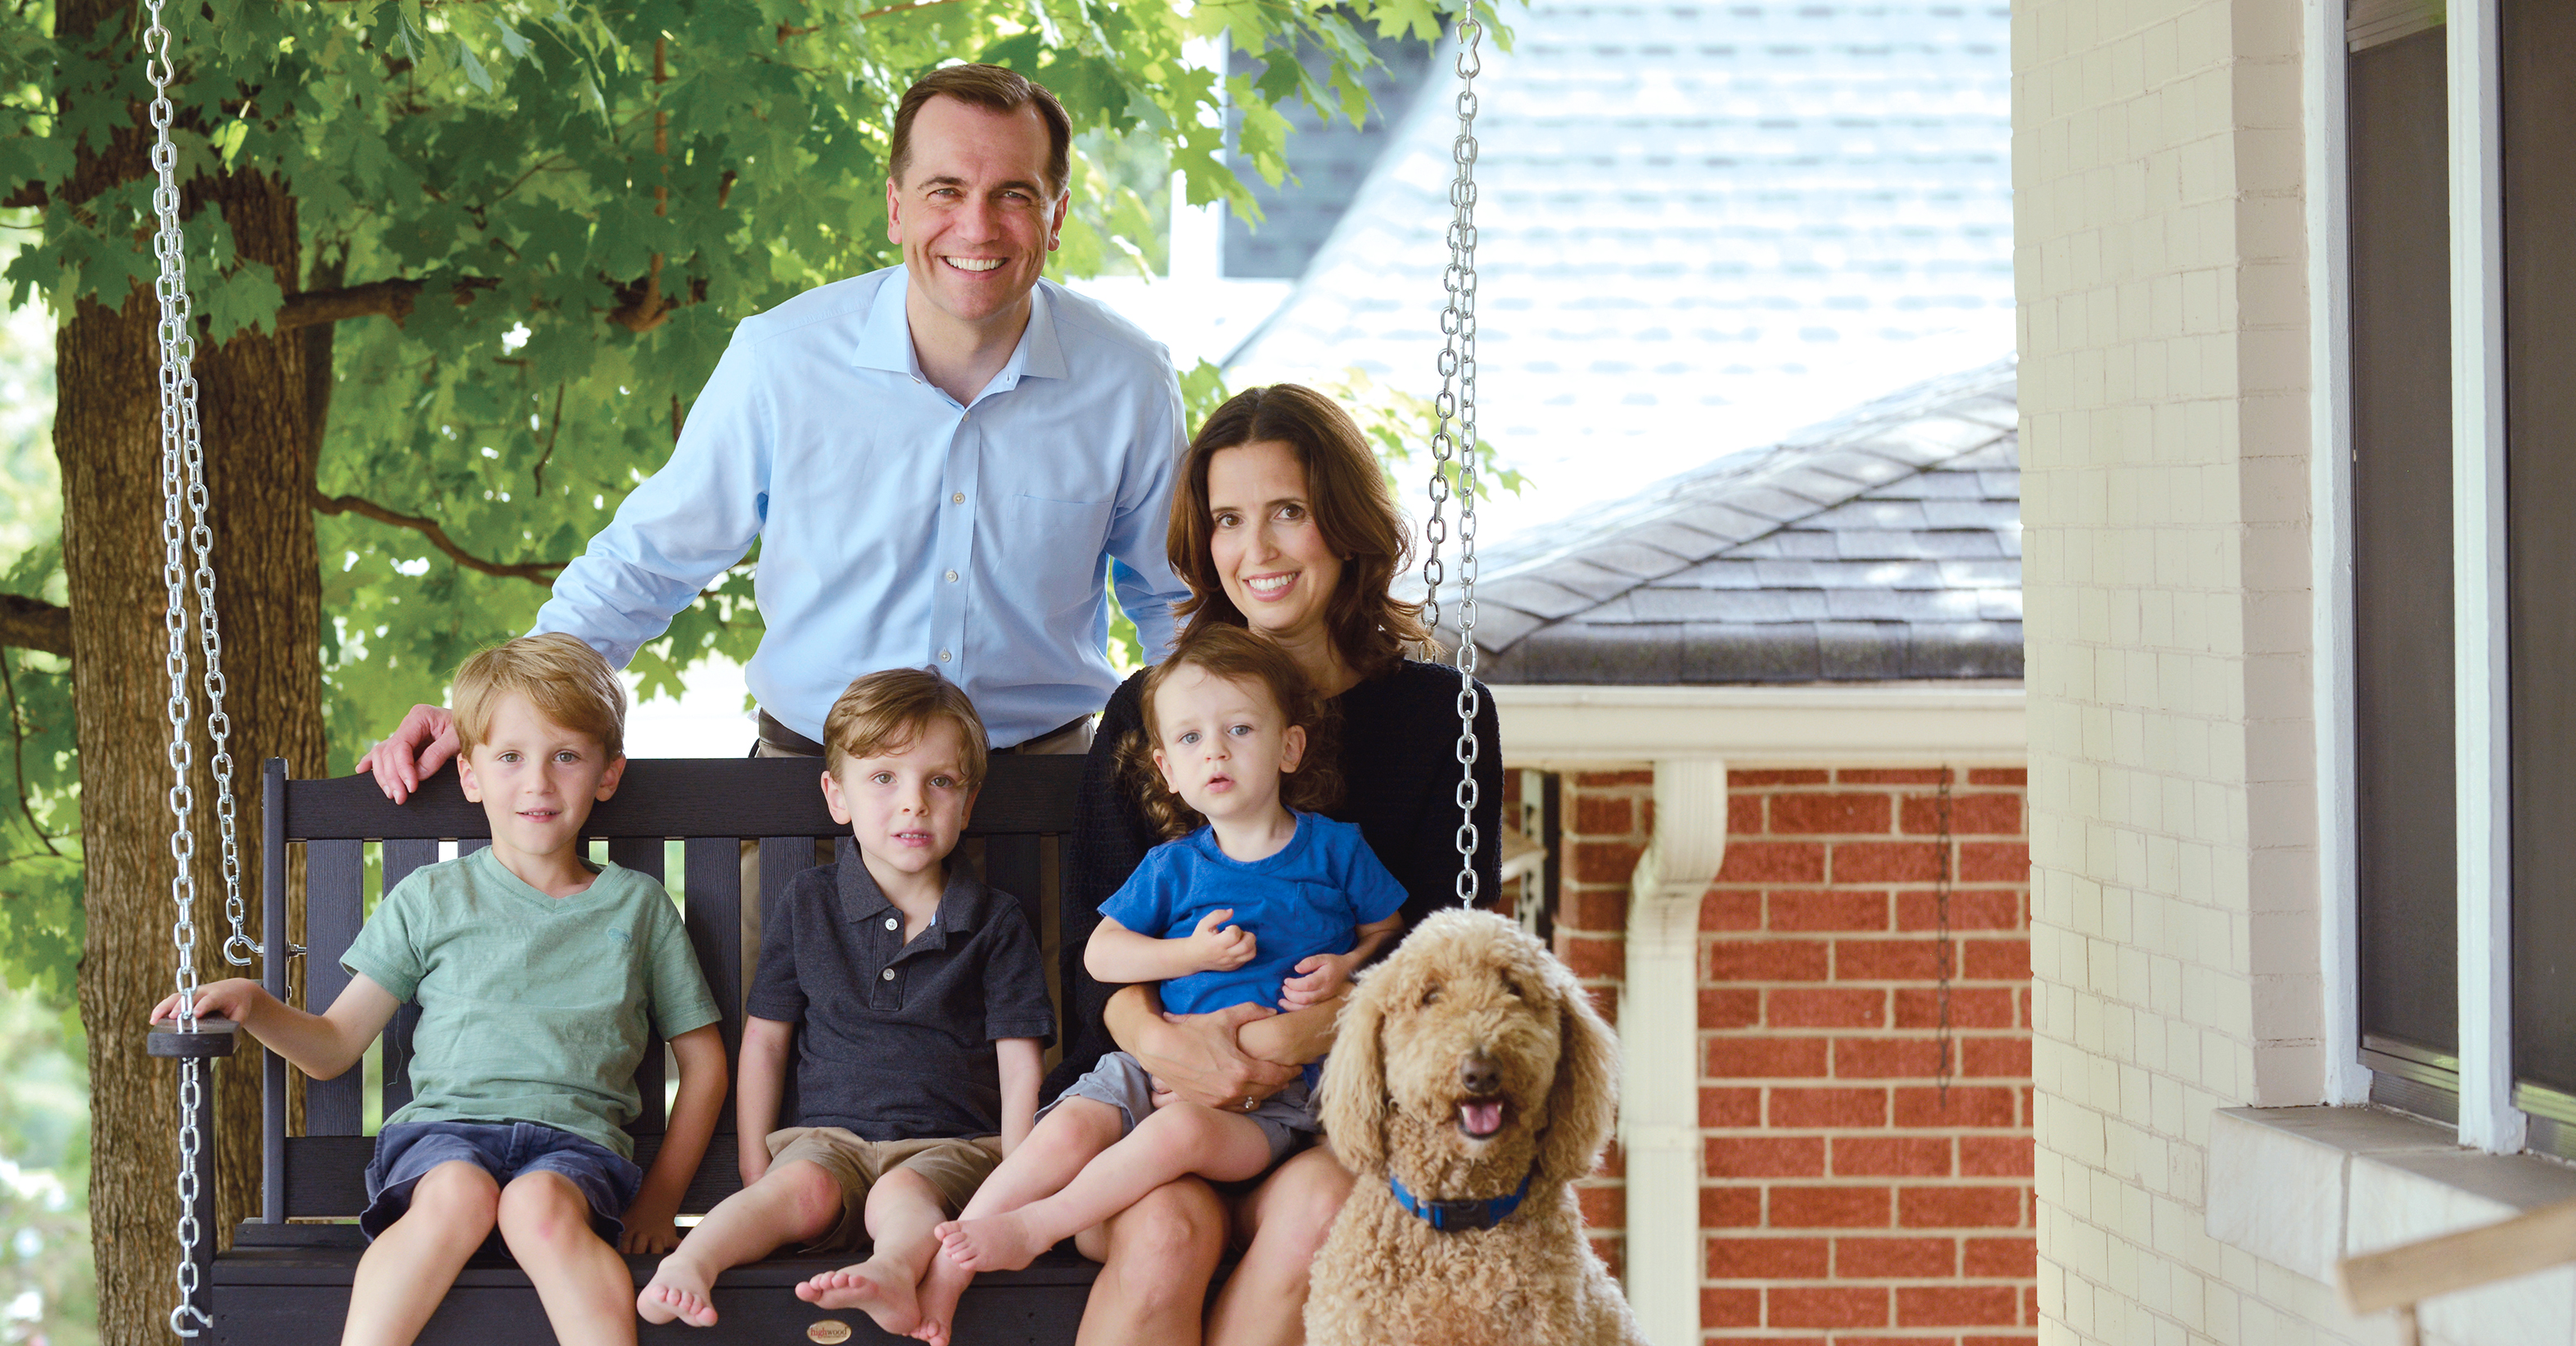 Portrait of John Ray Clemmons & his family on their front porch.